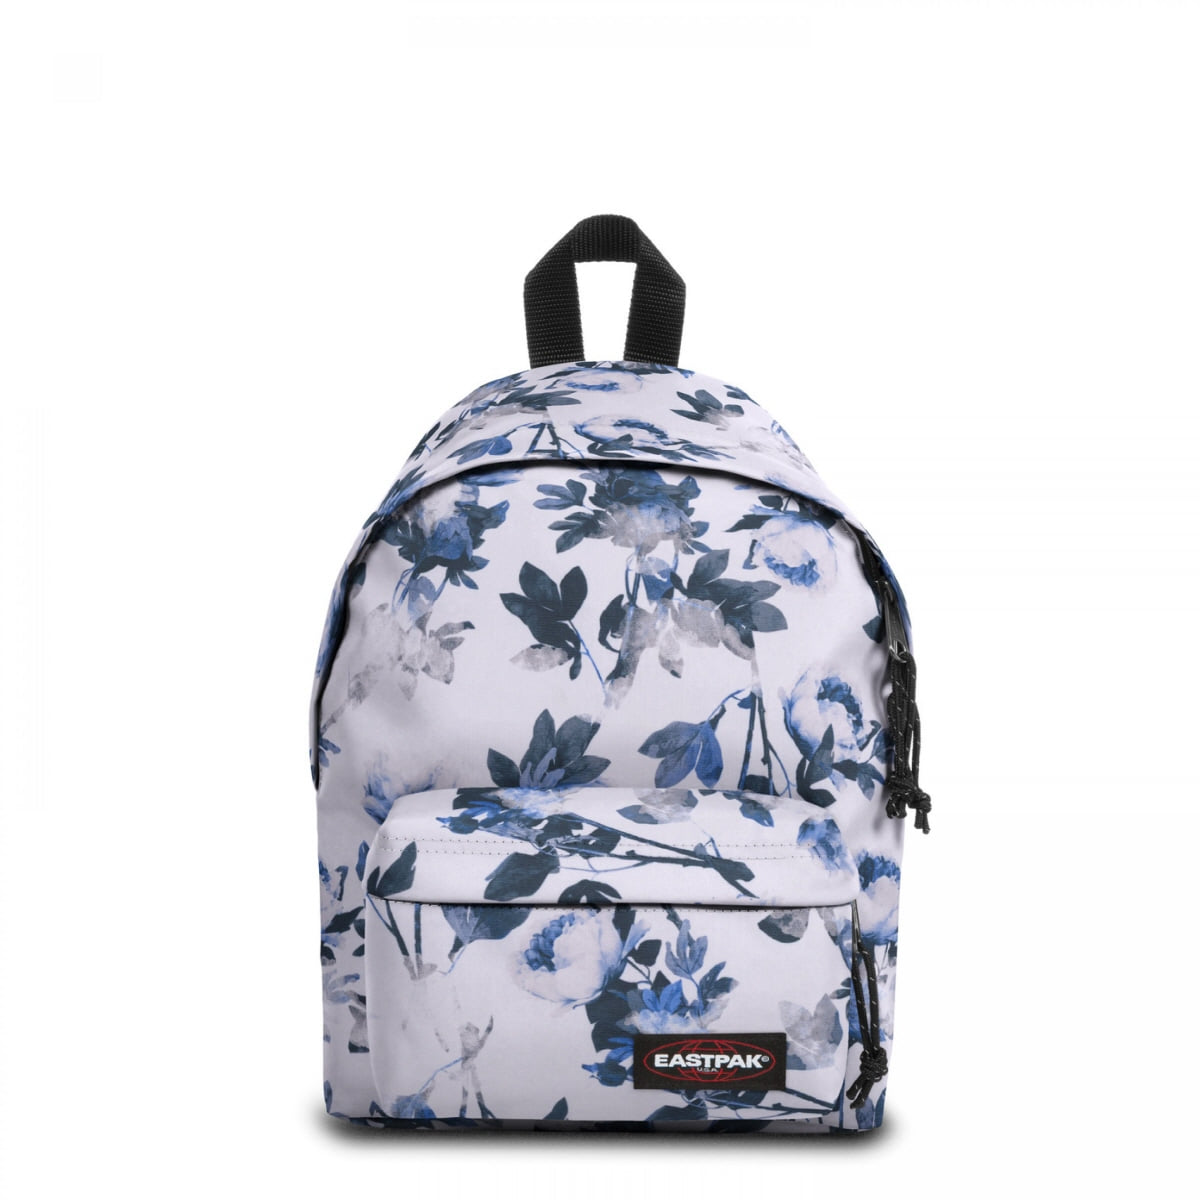 [EASTPAK] AUTHENTIC 백팩 올빗 EJCBA01 77Y